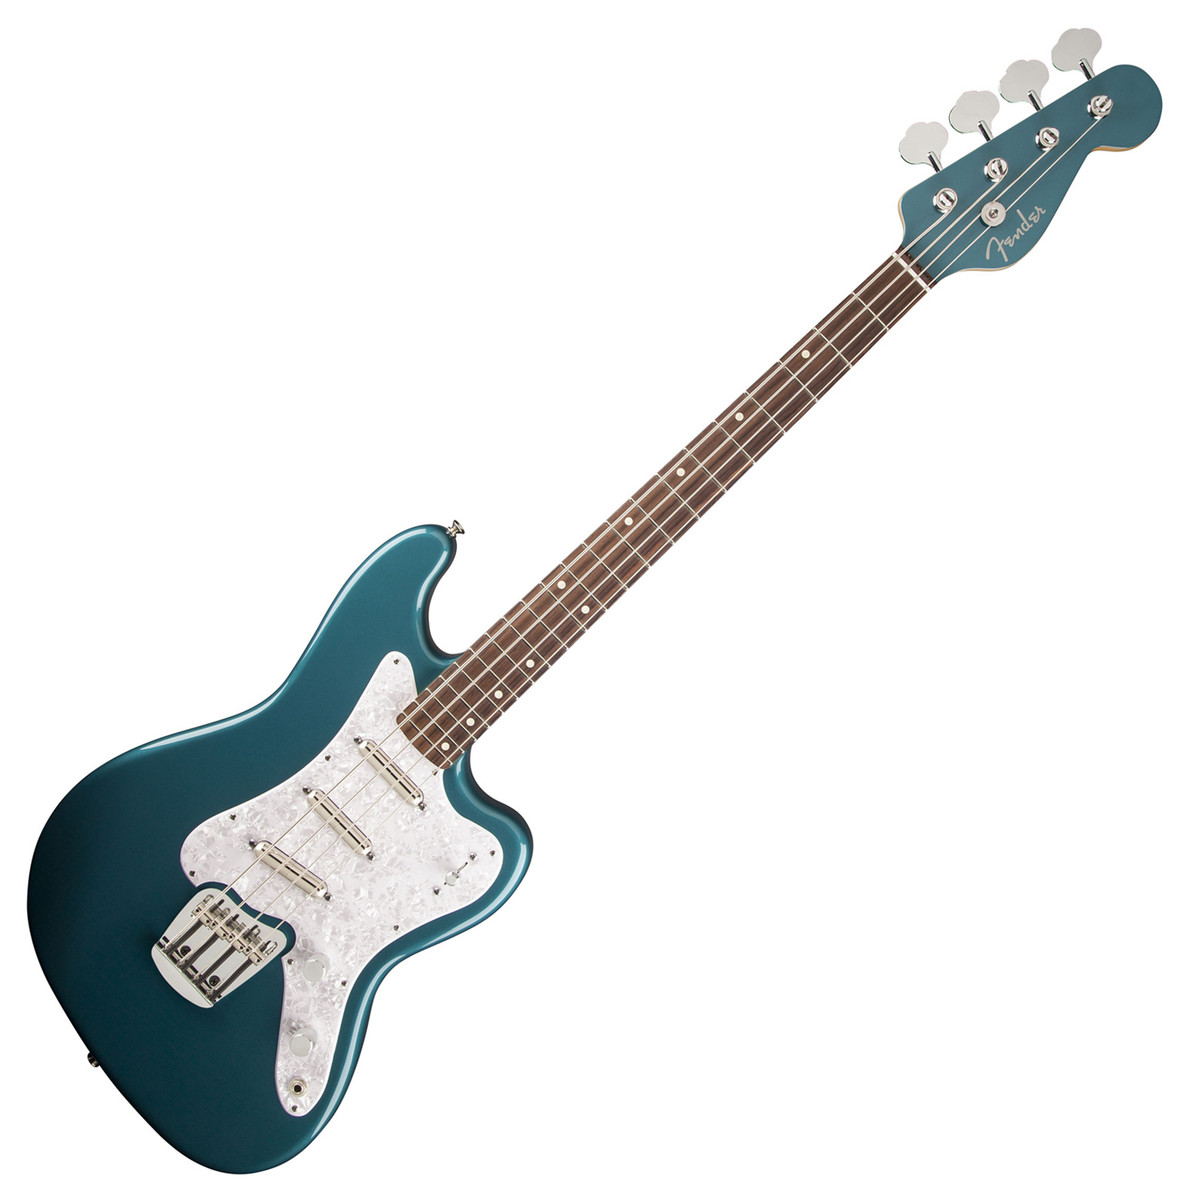 Oneonta Stanley Clarke Spellcaster Bass. Preview